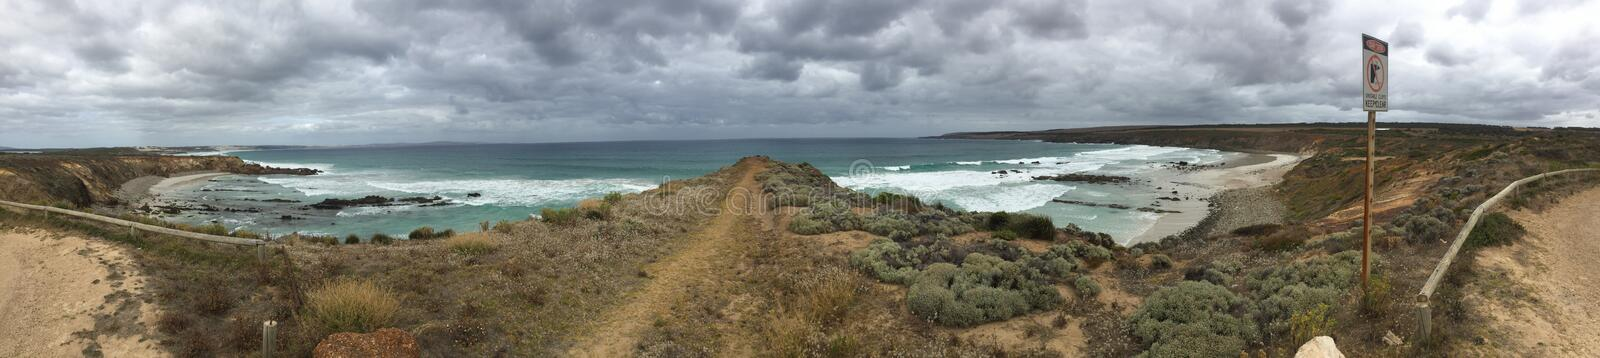 Eyre Peninsula at its best royalty free stock photo